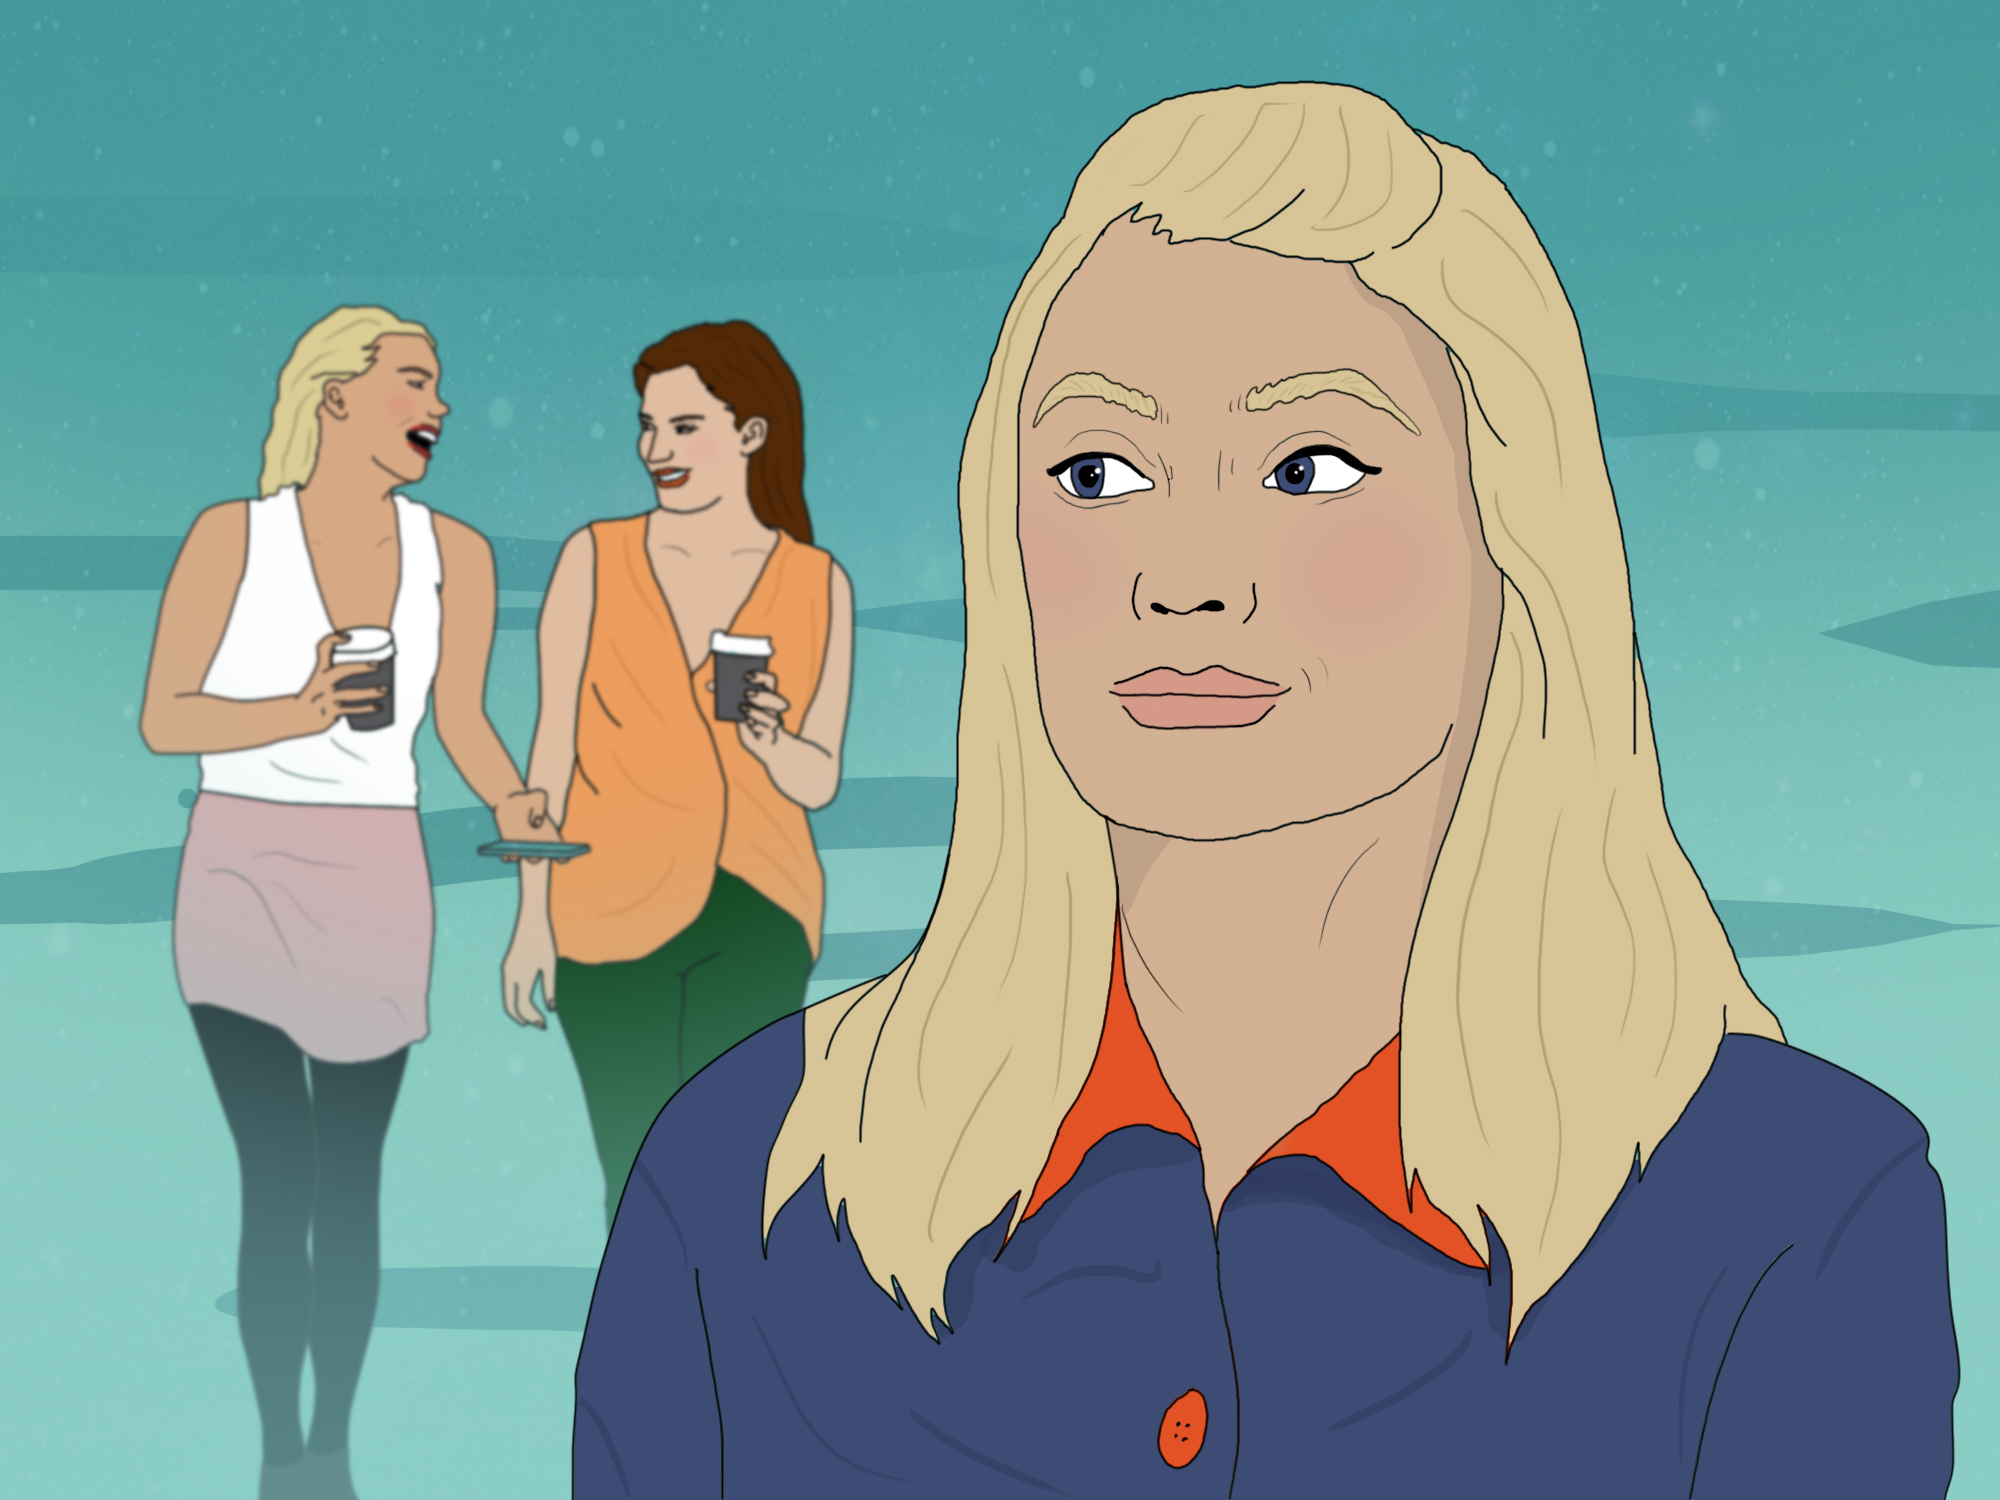 modern etiquette: I don't want to hang out with people from work